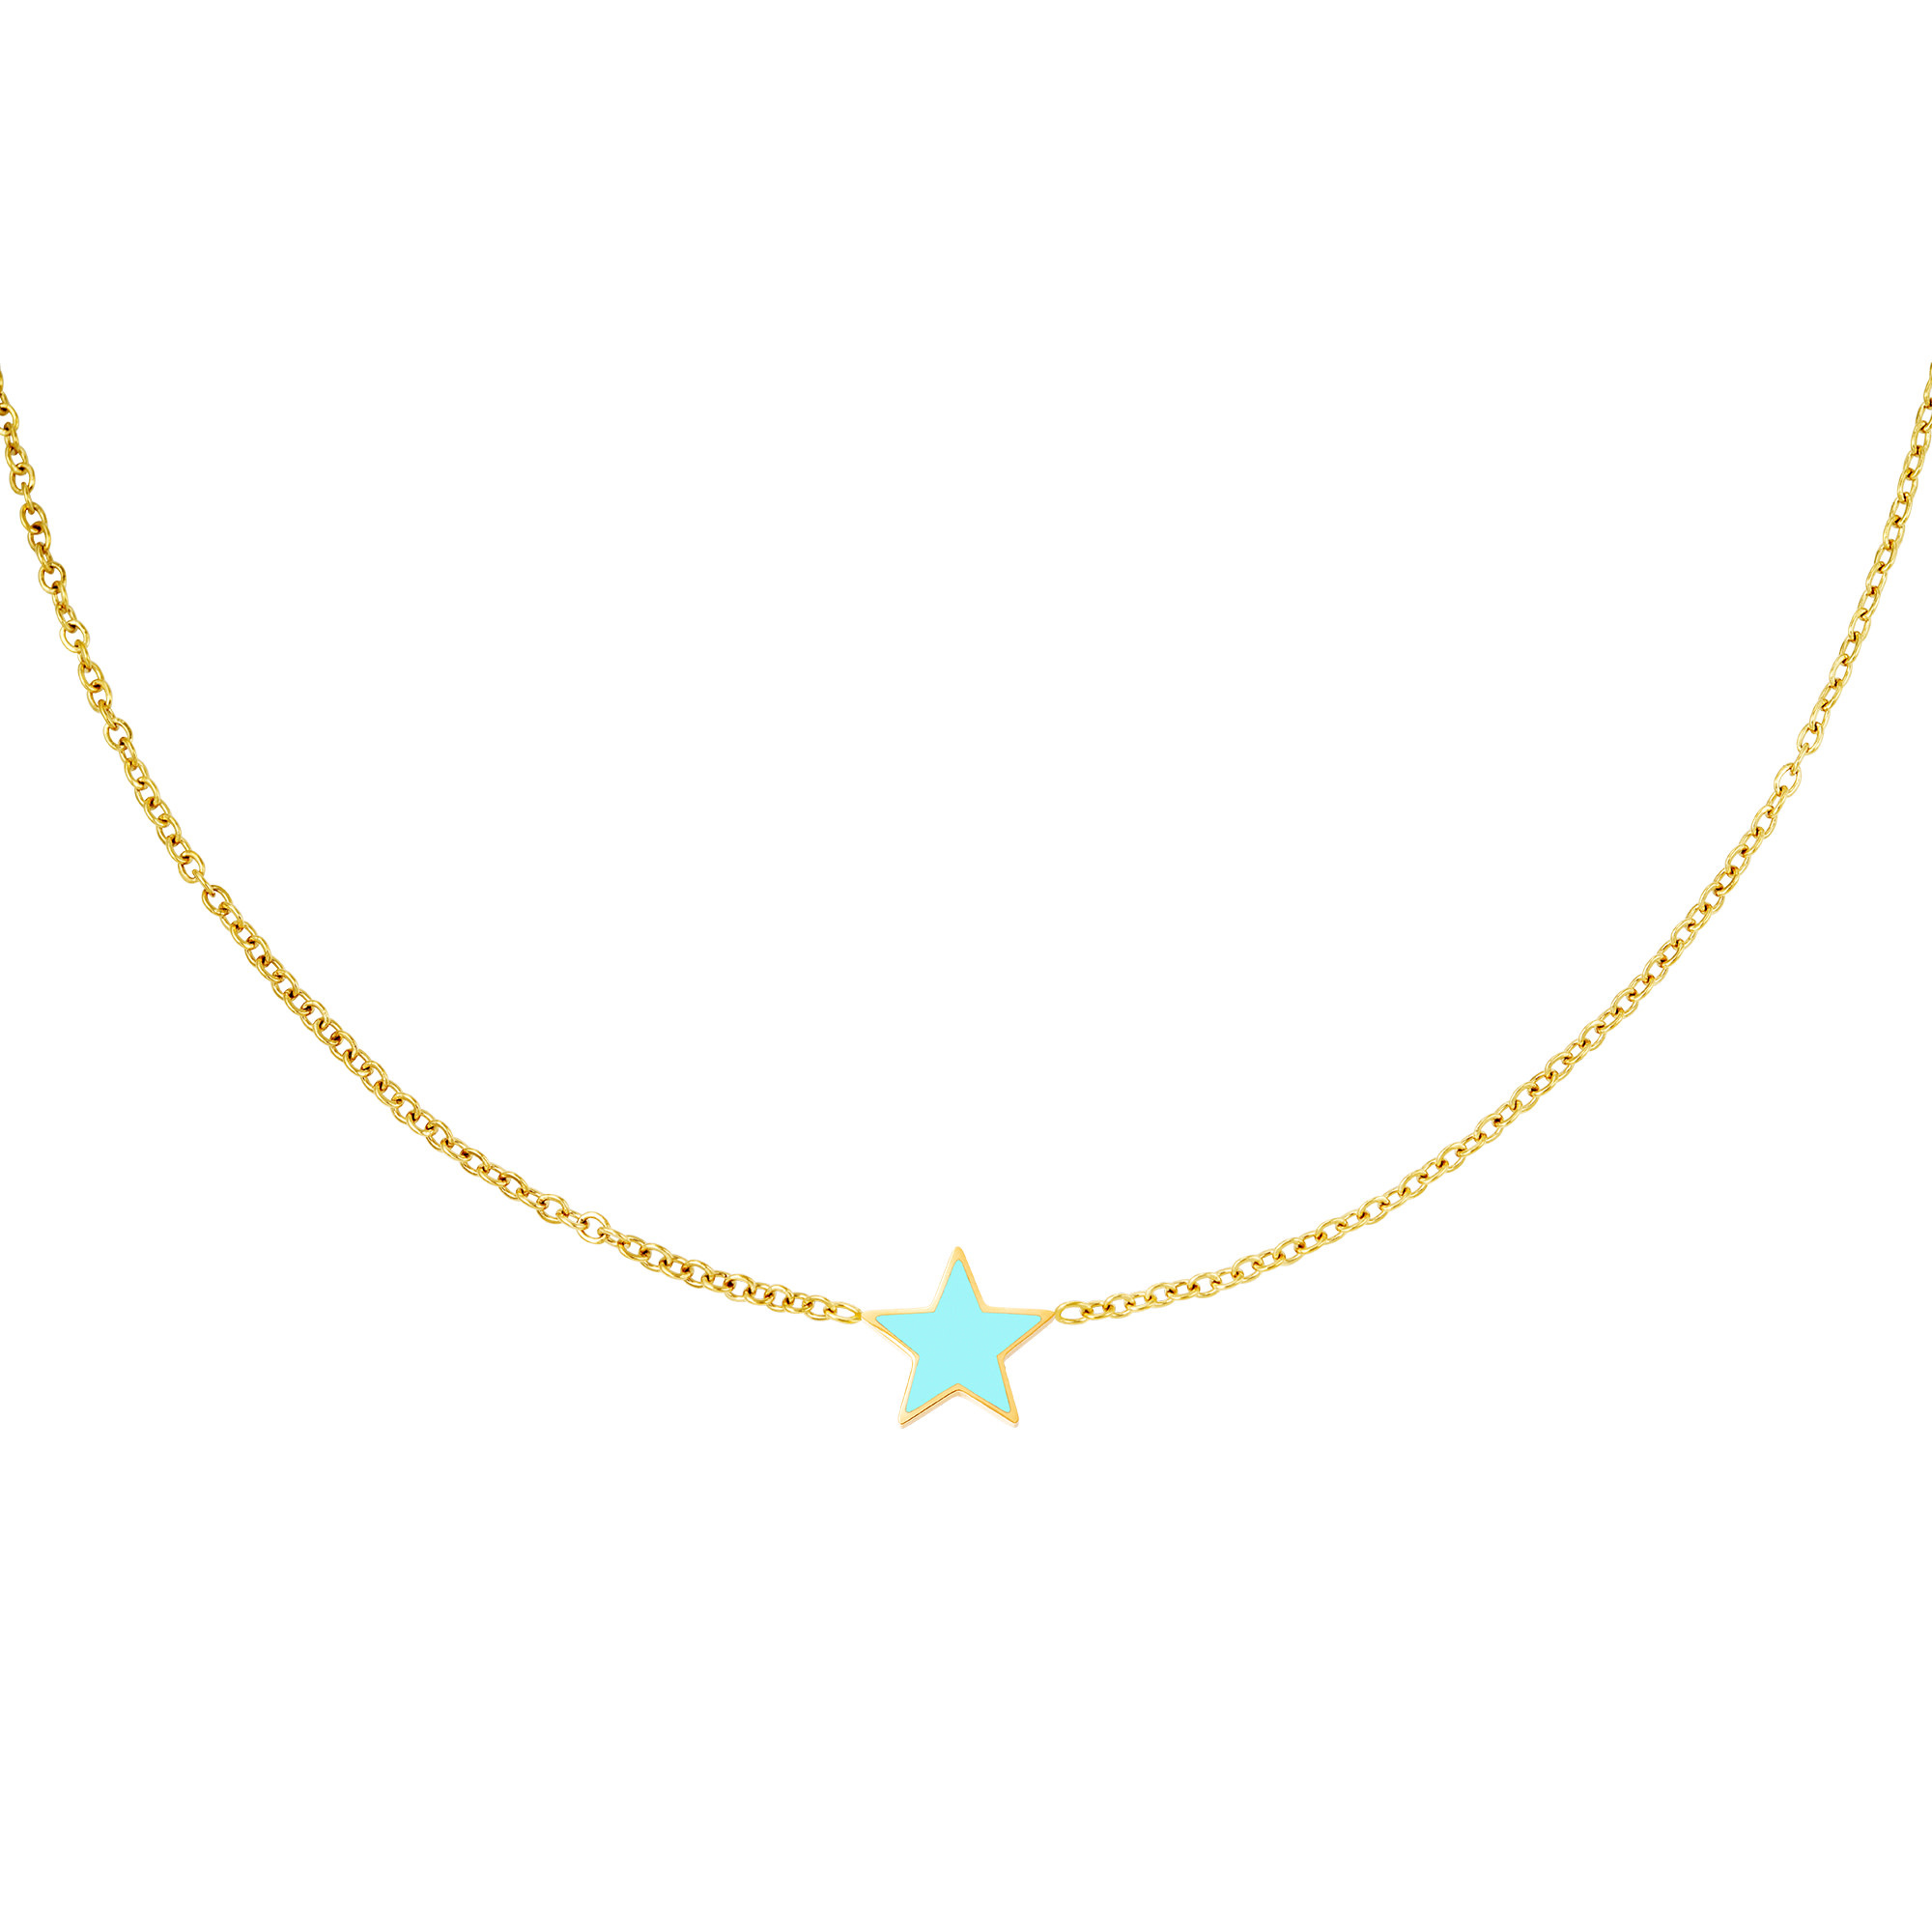 With love Necklace star gold - aqua